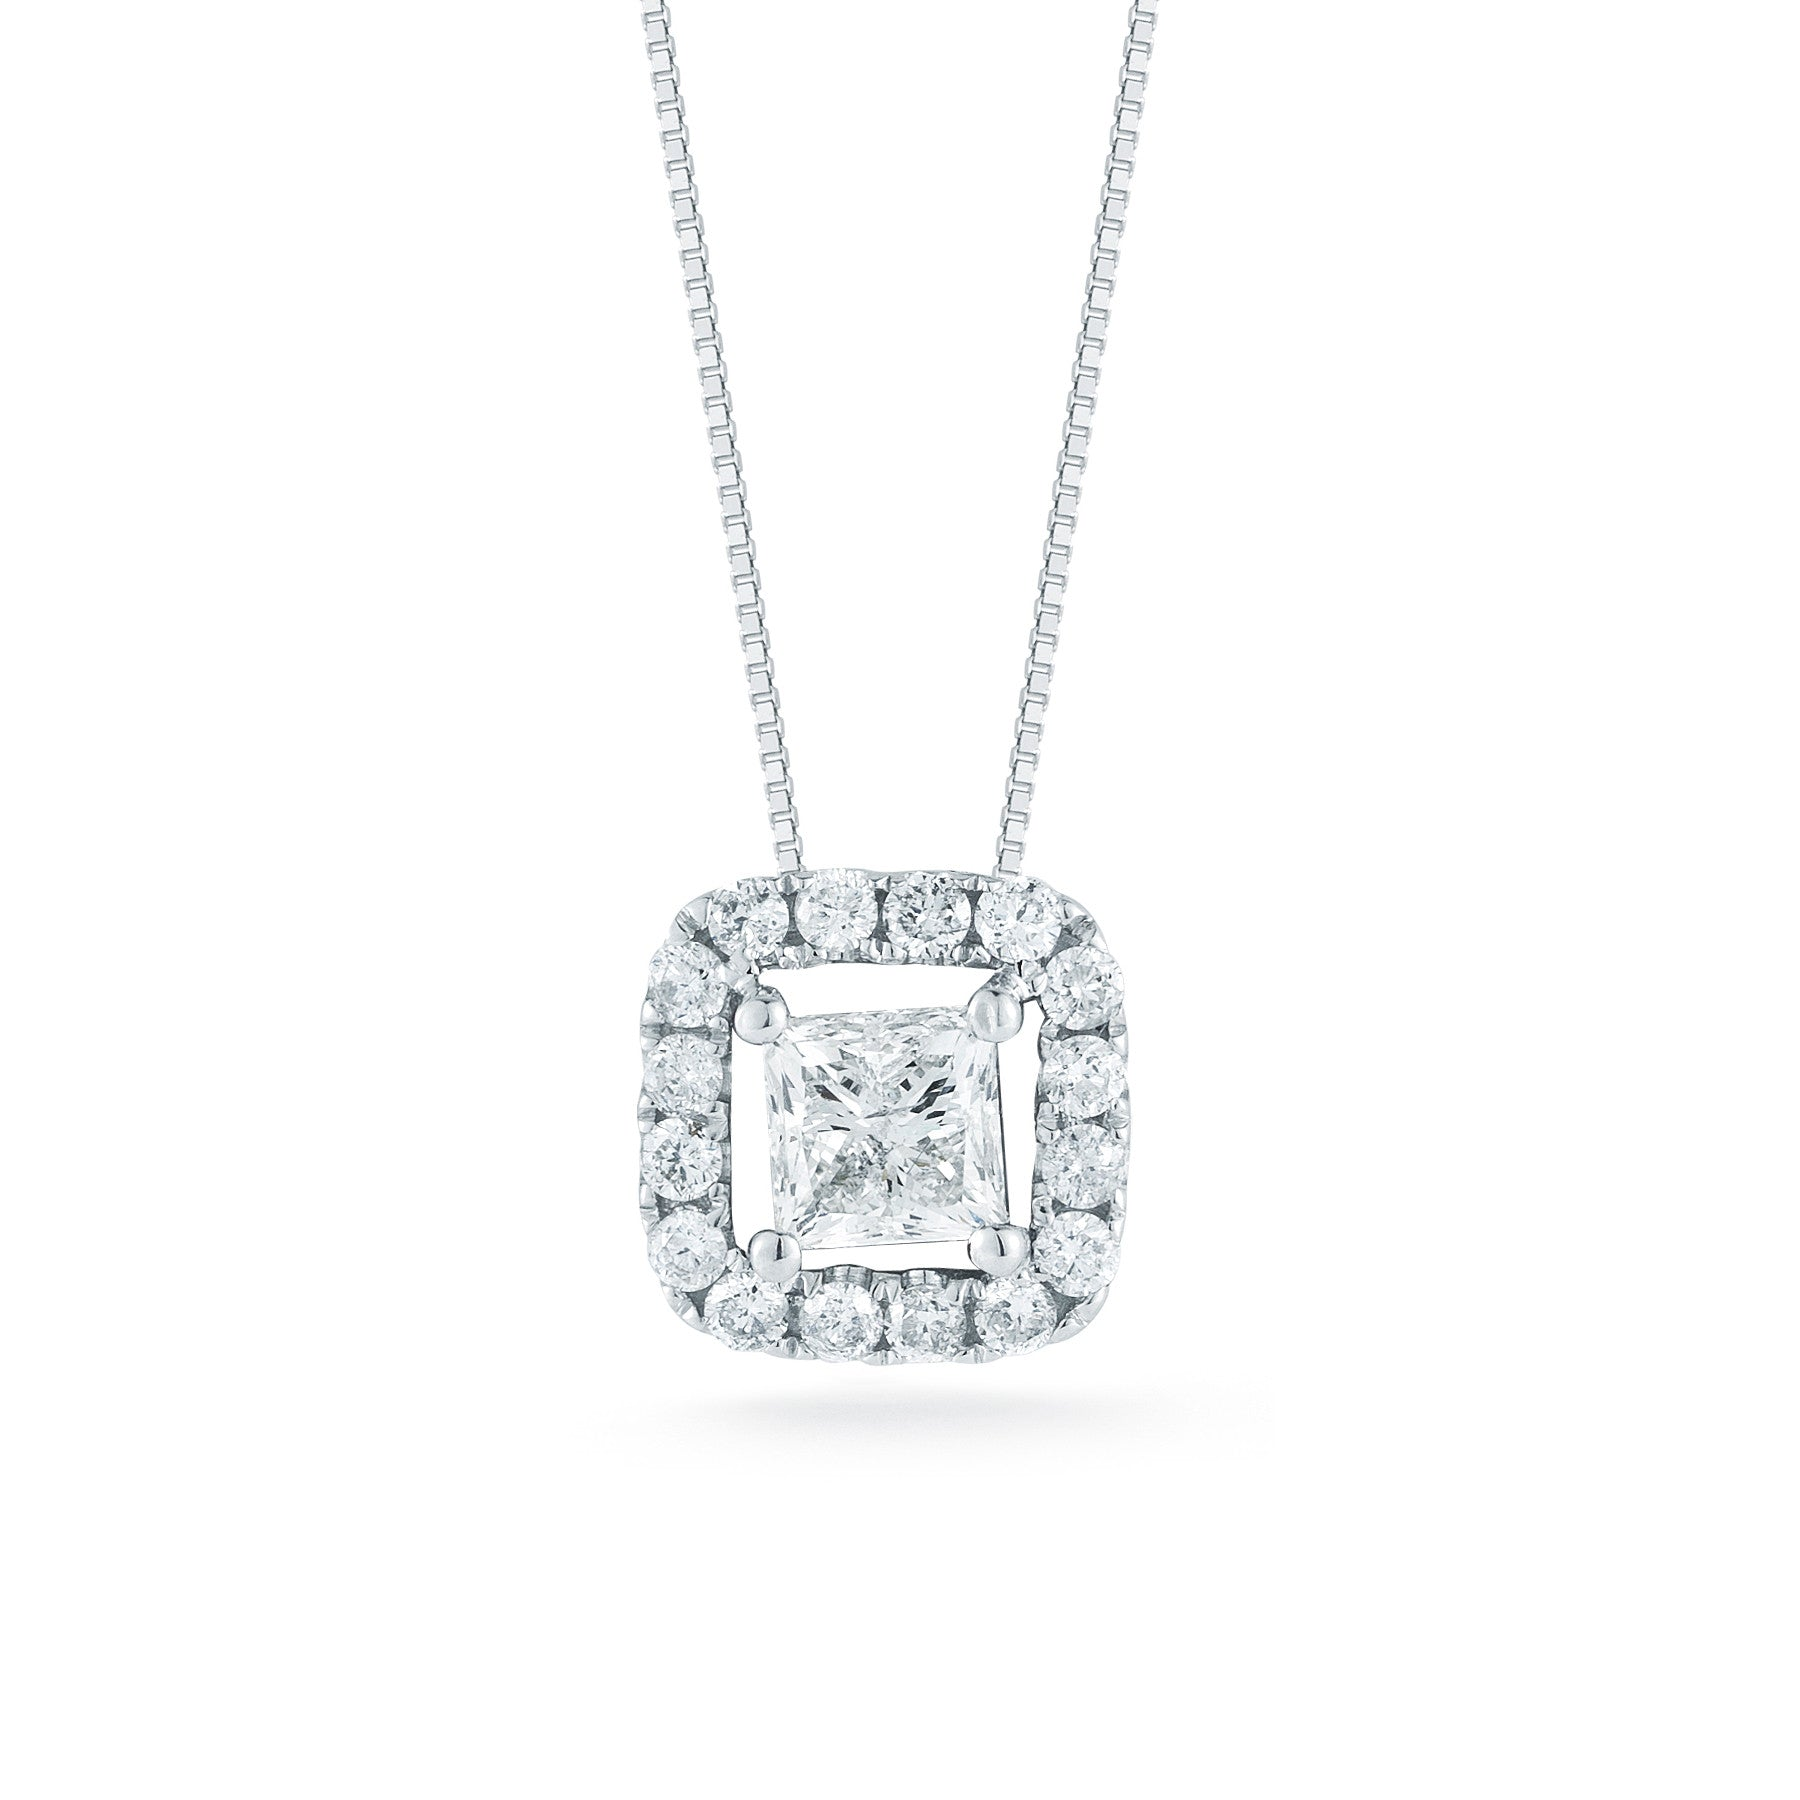 Four prong princess cut diamond halo pendant 40 off final four prong princess cut diamond halo pendant 40 off final markdown aloadofball Gallery